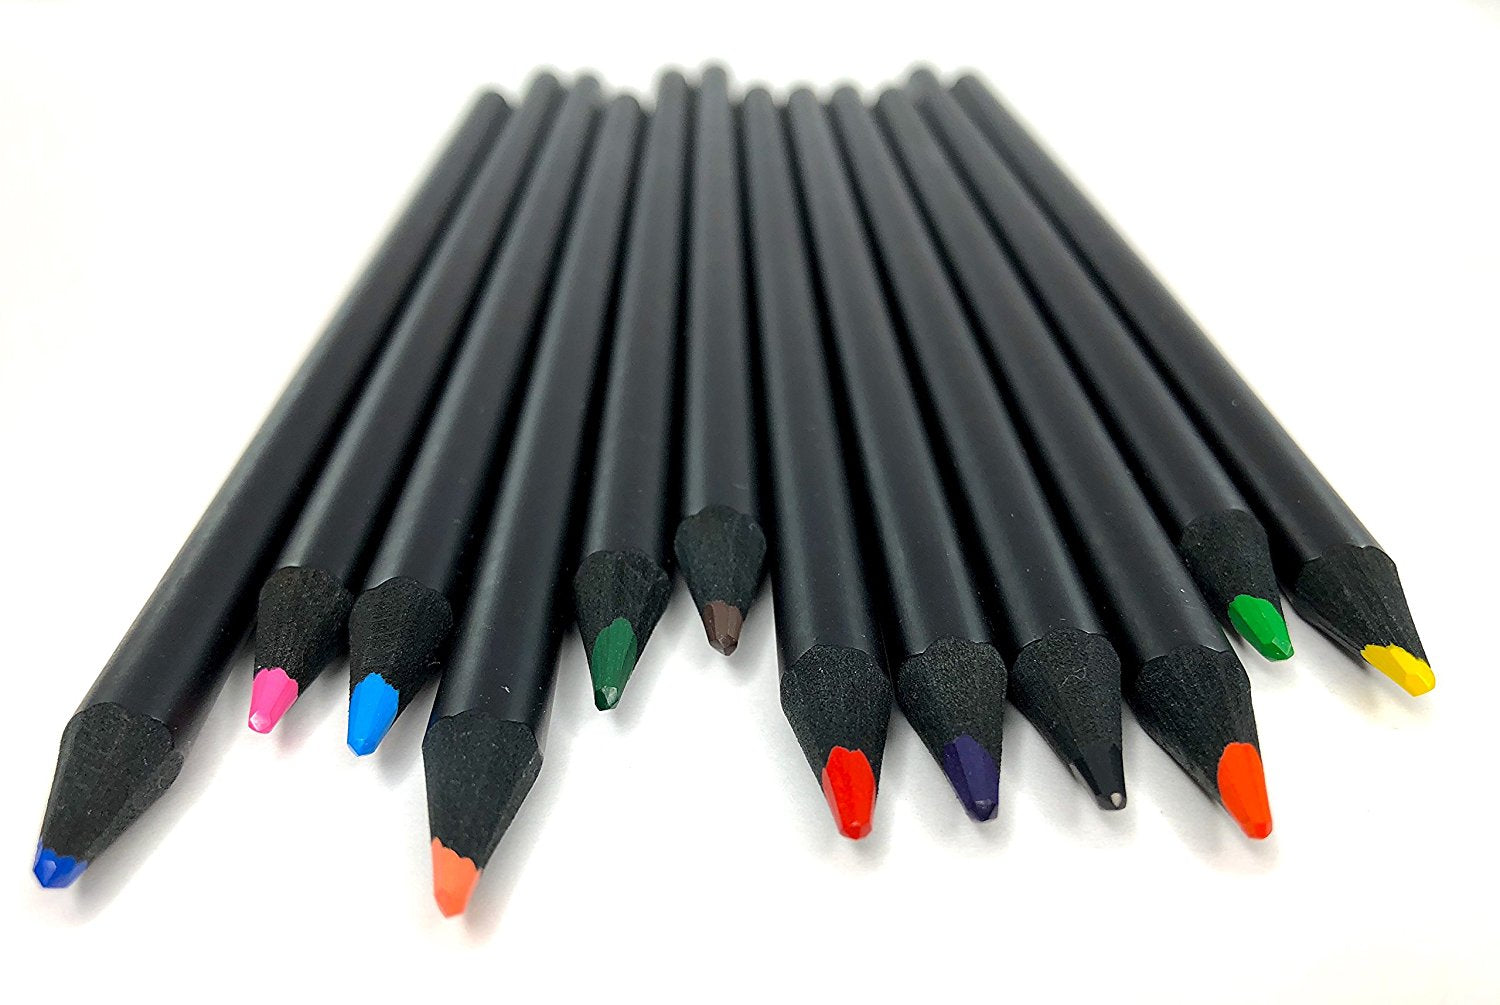 Colored Pencils: Set of 12 Varying Color Pencils in a Stylish Black Box - Pre Sharpened